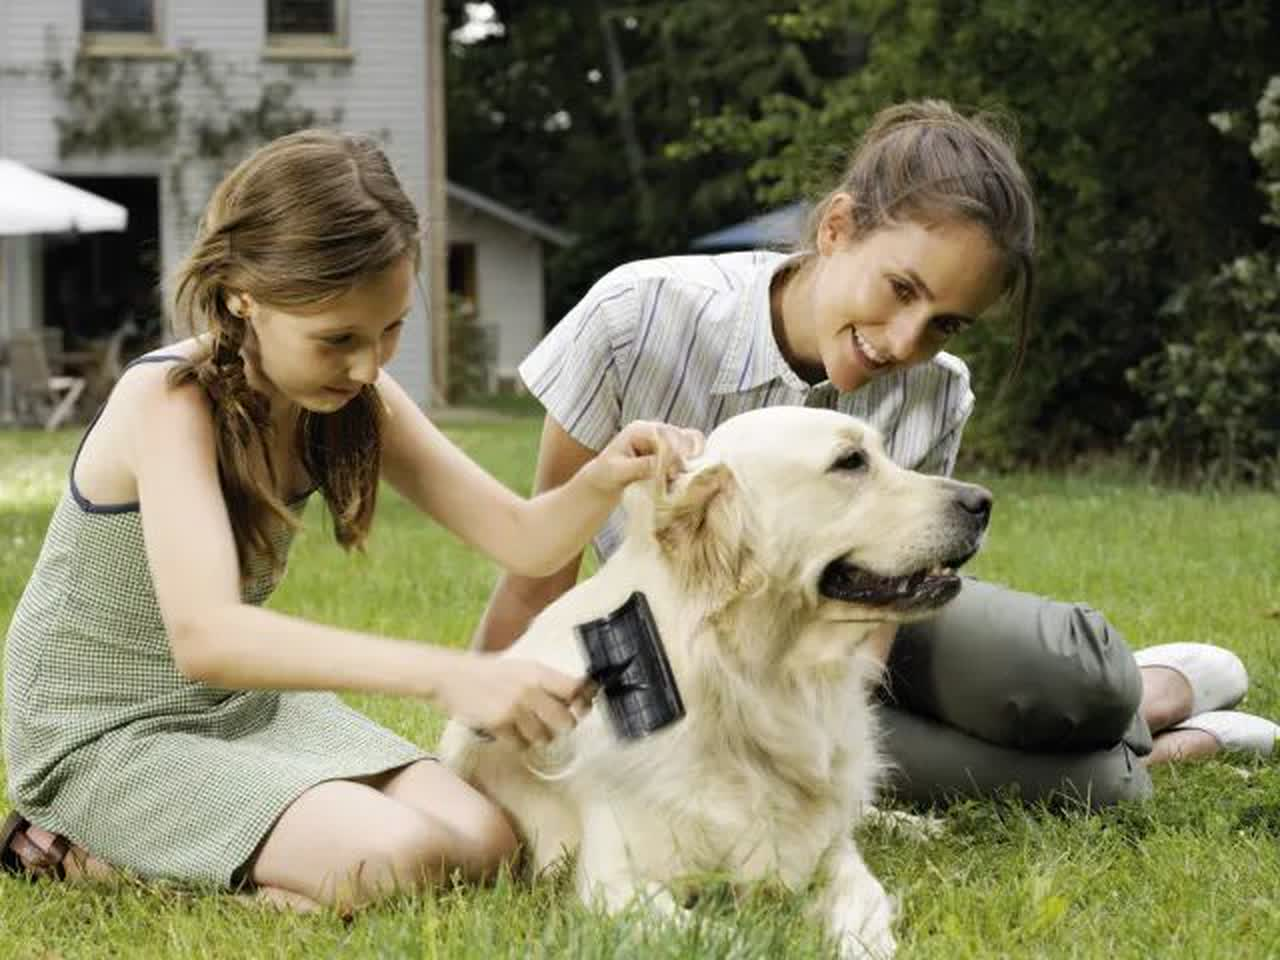 Mother and daughter brushing dog in garden, smiling